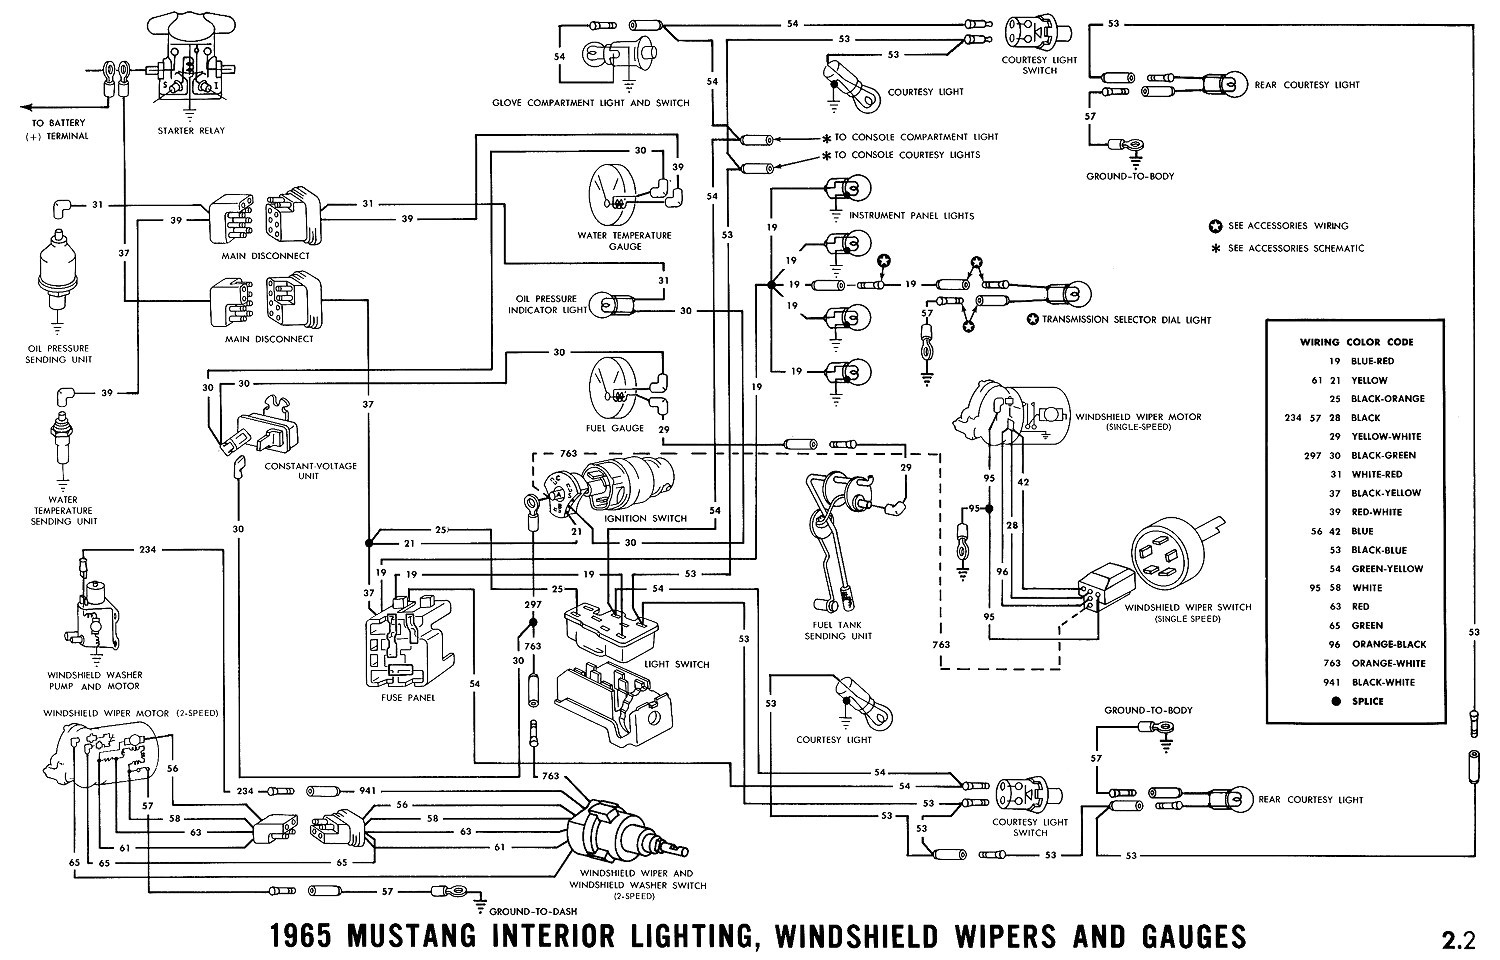 1965 mustang ignition switch wiring diagram Collection-alternator wiring diagram 65 mustang diagrams schematics beauteous rh natebird me 69 Mustang Alternator Wiring 65 20-q